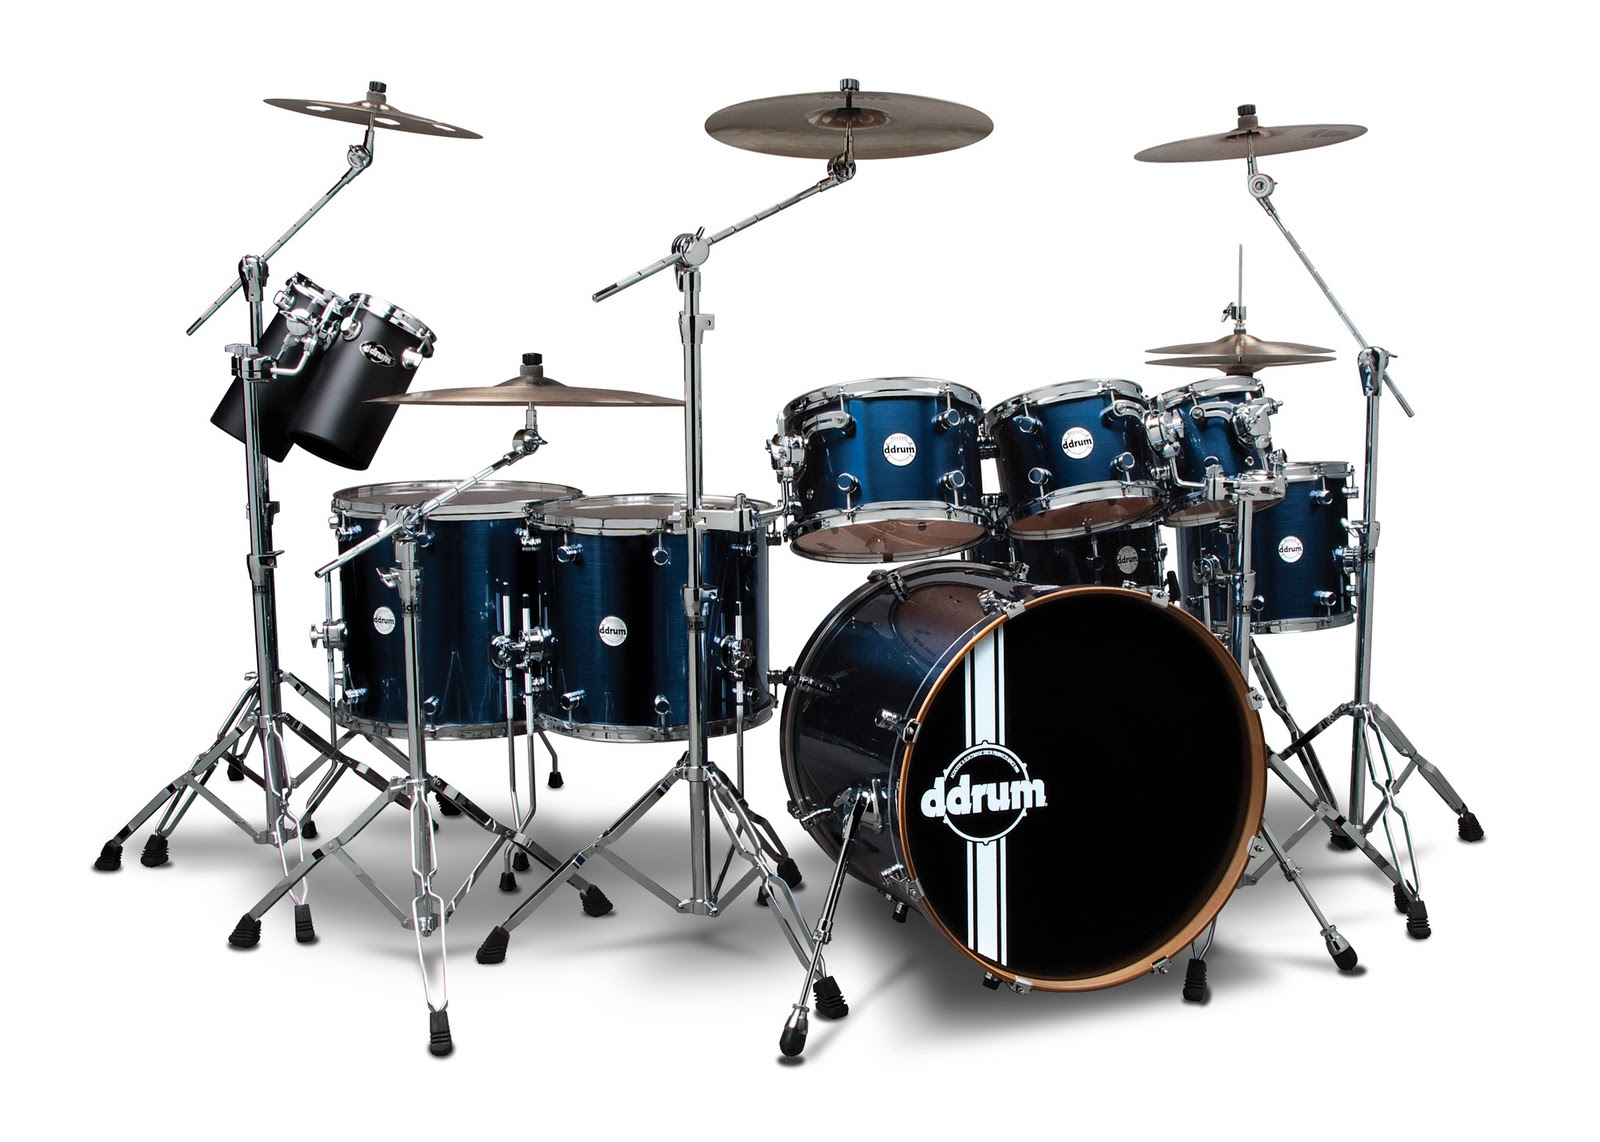 The Dave Factor: New Year's Resolution #3: Get a new drum kit!